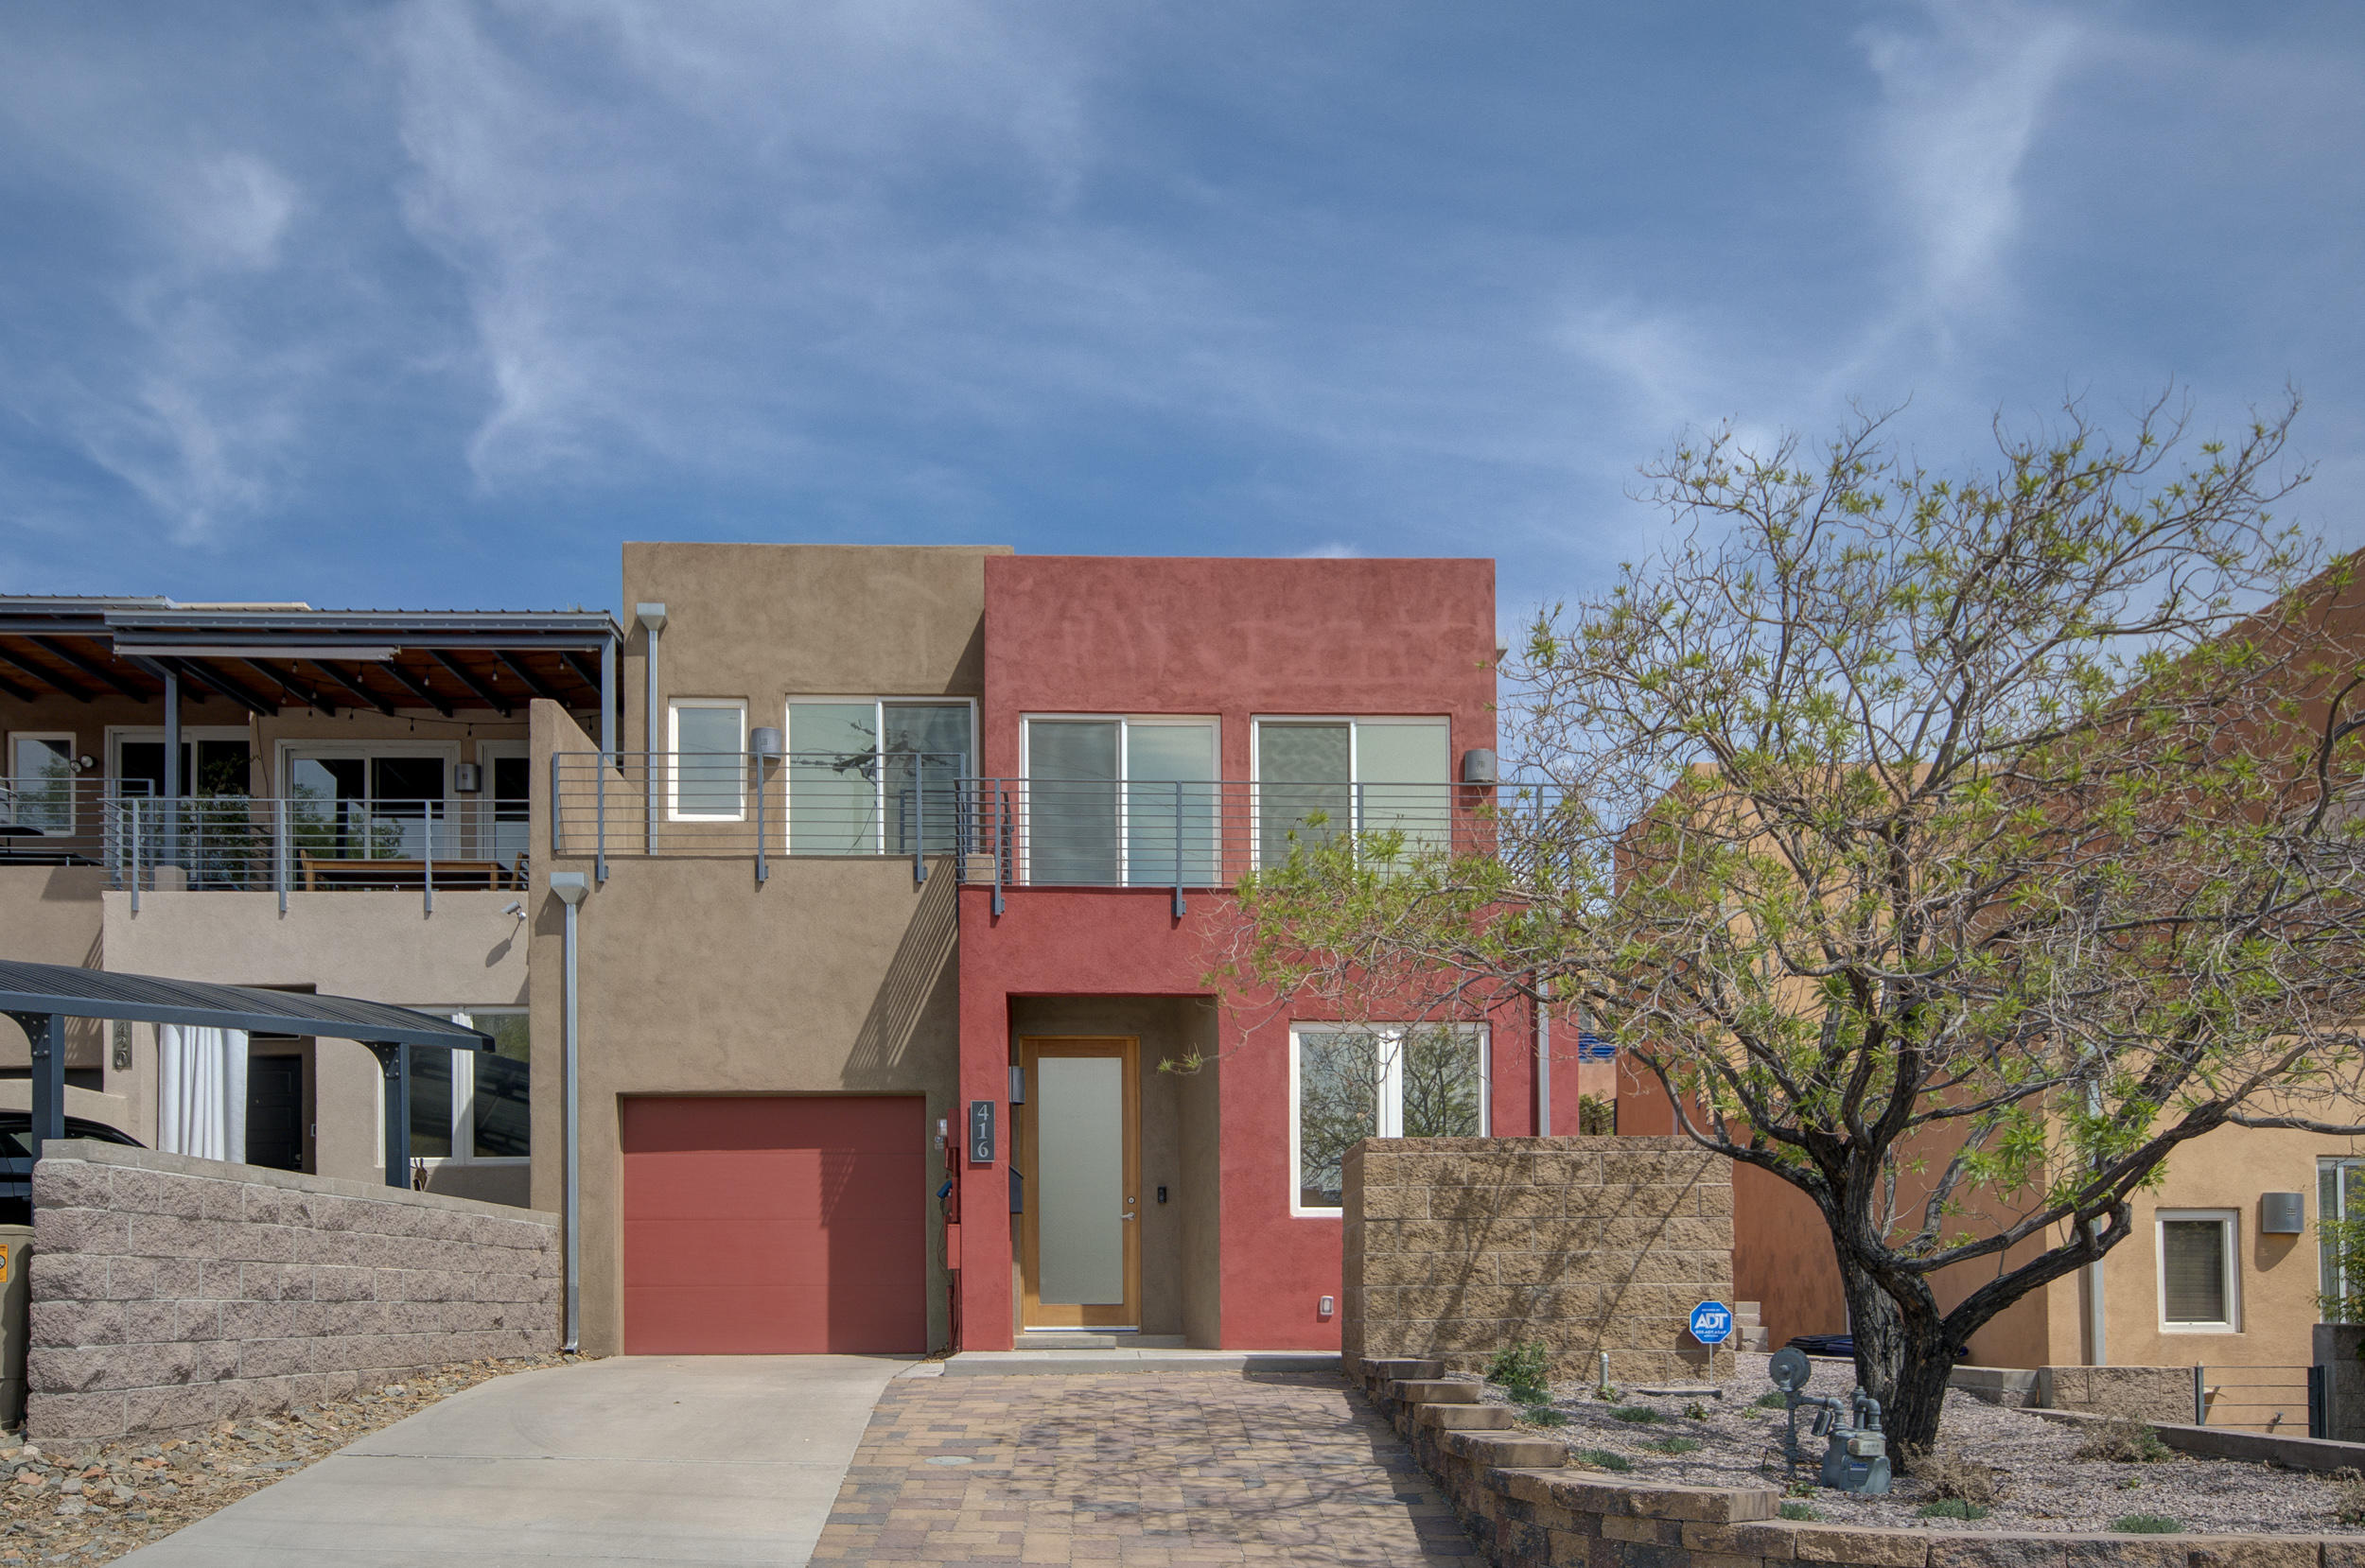 Spruce Park Townhome.  Excellent Location Close to Hospitals, UNM And Downtown   Three Large and Separate Bedrooms with Three Full Luxurious Baths!  Awesome Reverse Floor Plan with Owners Suite, Living Room, Dining Room and Kitchen Upstairs.   Finished/Oversized Tandem Garage with Room for a Workshop and Access to Back Yard. End Unit Features 3 Balconies, A Covered Patio and Low/No Maintenance Yards. Bamboo Hardwood Floors on Upper Level, Stained Concrete on Lower Level. Newer LOW E and Tinted Thermal Patio Doors Plus Energy Efficient Windows, Radiant Heat and 5 Yr. TPO Roof. Owned SOLAR PANELS Provide a Huge Savings.   You'll Love Panoramic Views of The City and Twinkling Night Lights. Newer Stainless Kitchen Appliances. Washer and Dryer Stay Too!  Walk Score of 72, Bike Score of 83.